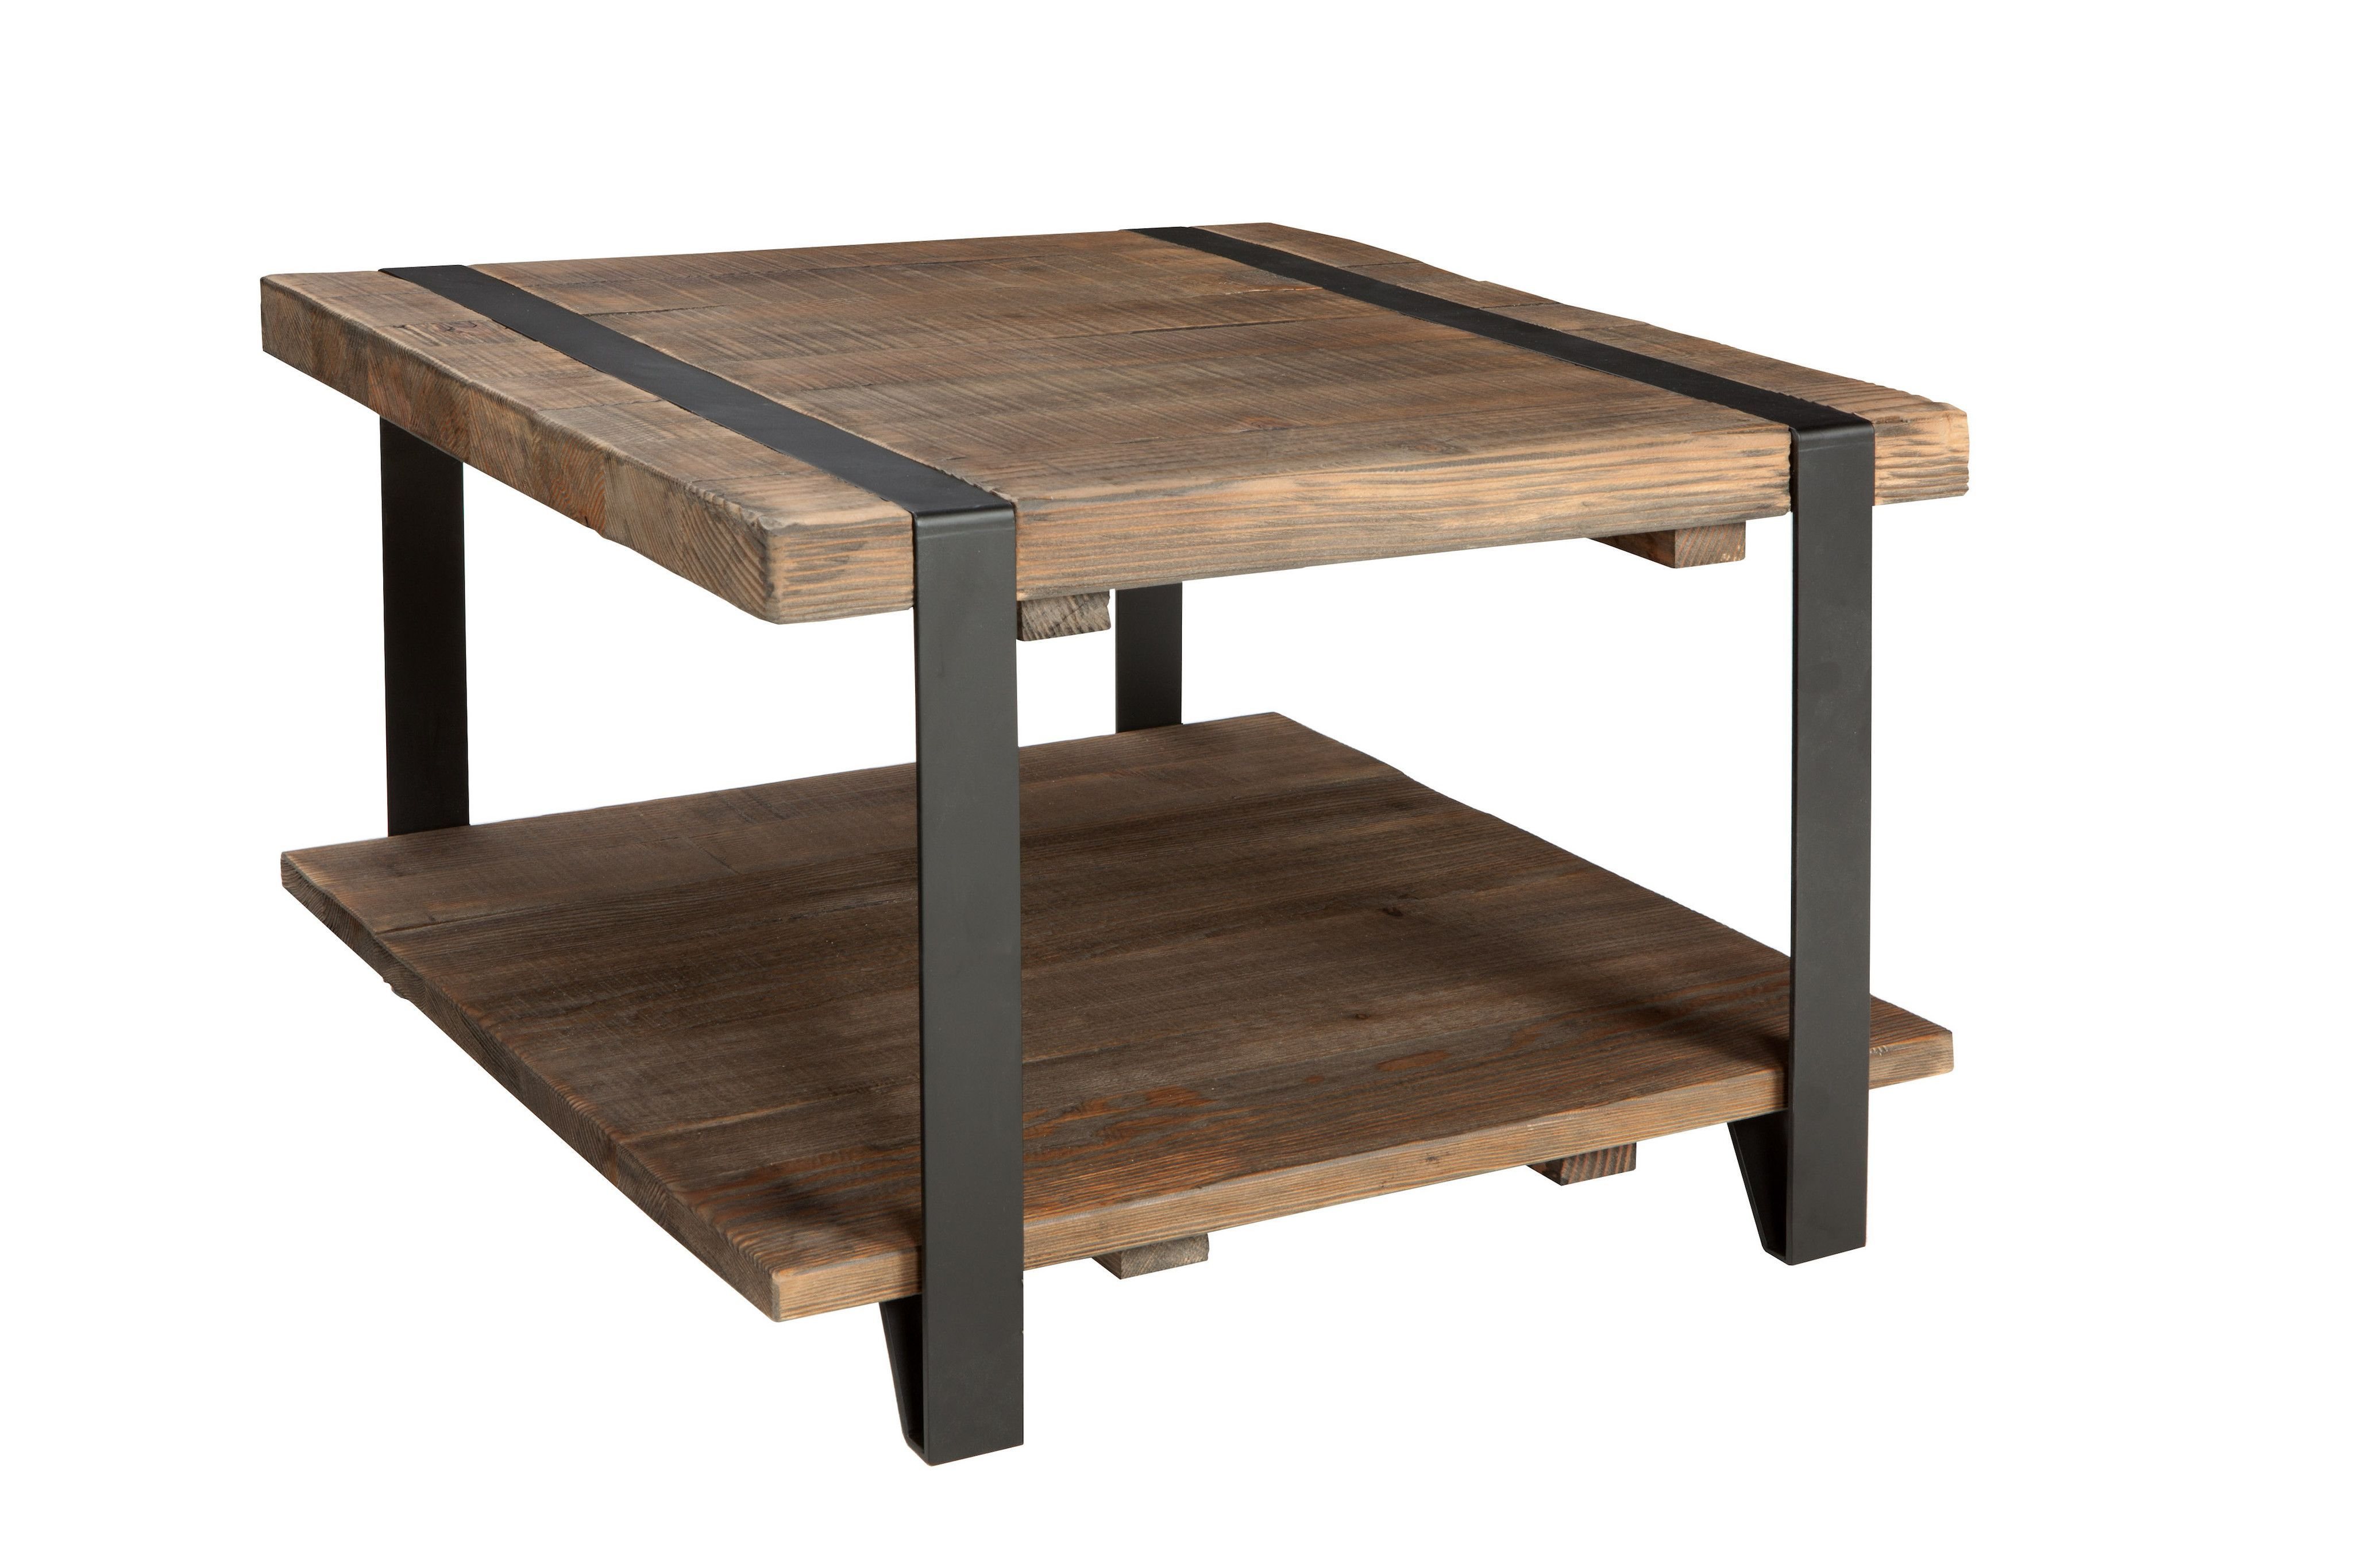 Coole Couchtische Foxford 27 Inch Reclaimed Wood Square Coffee Table Products